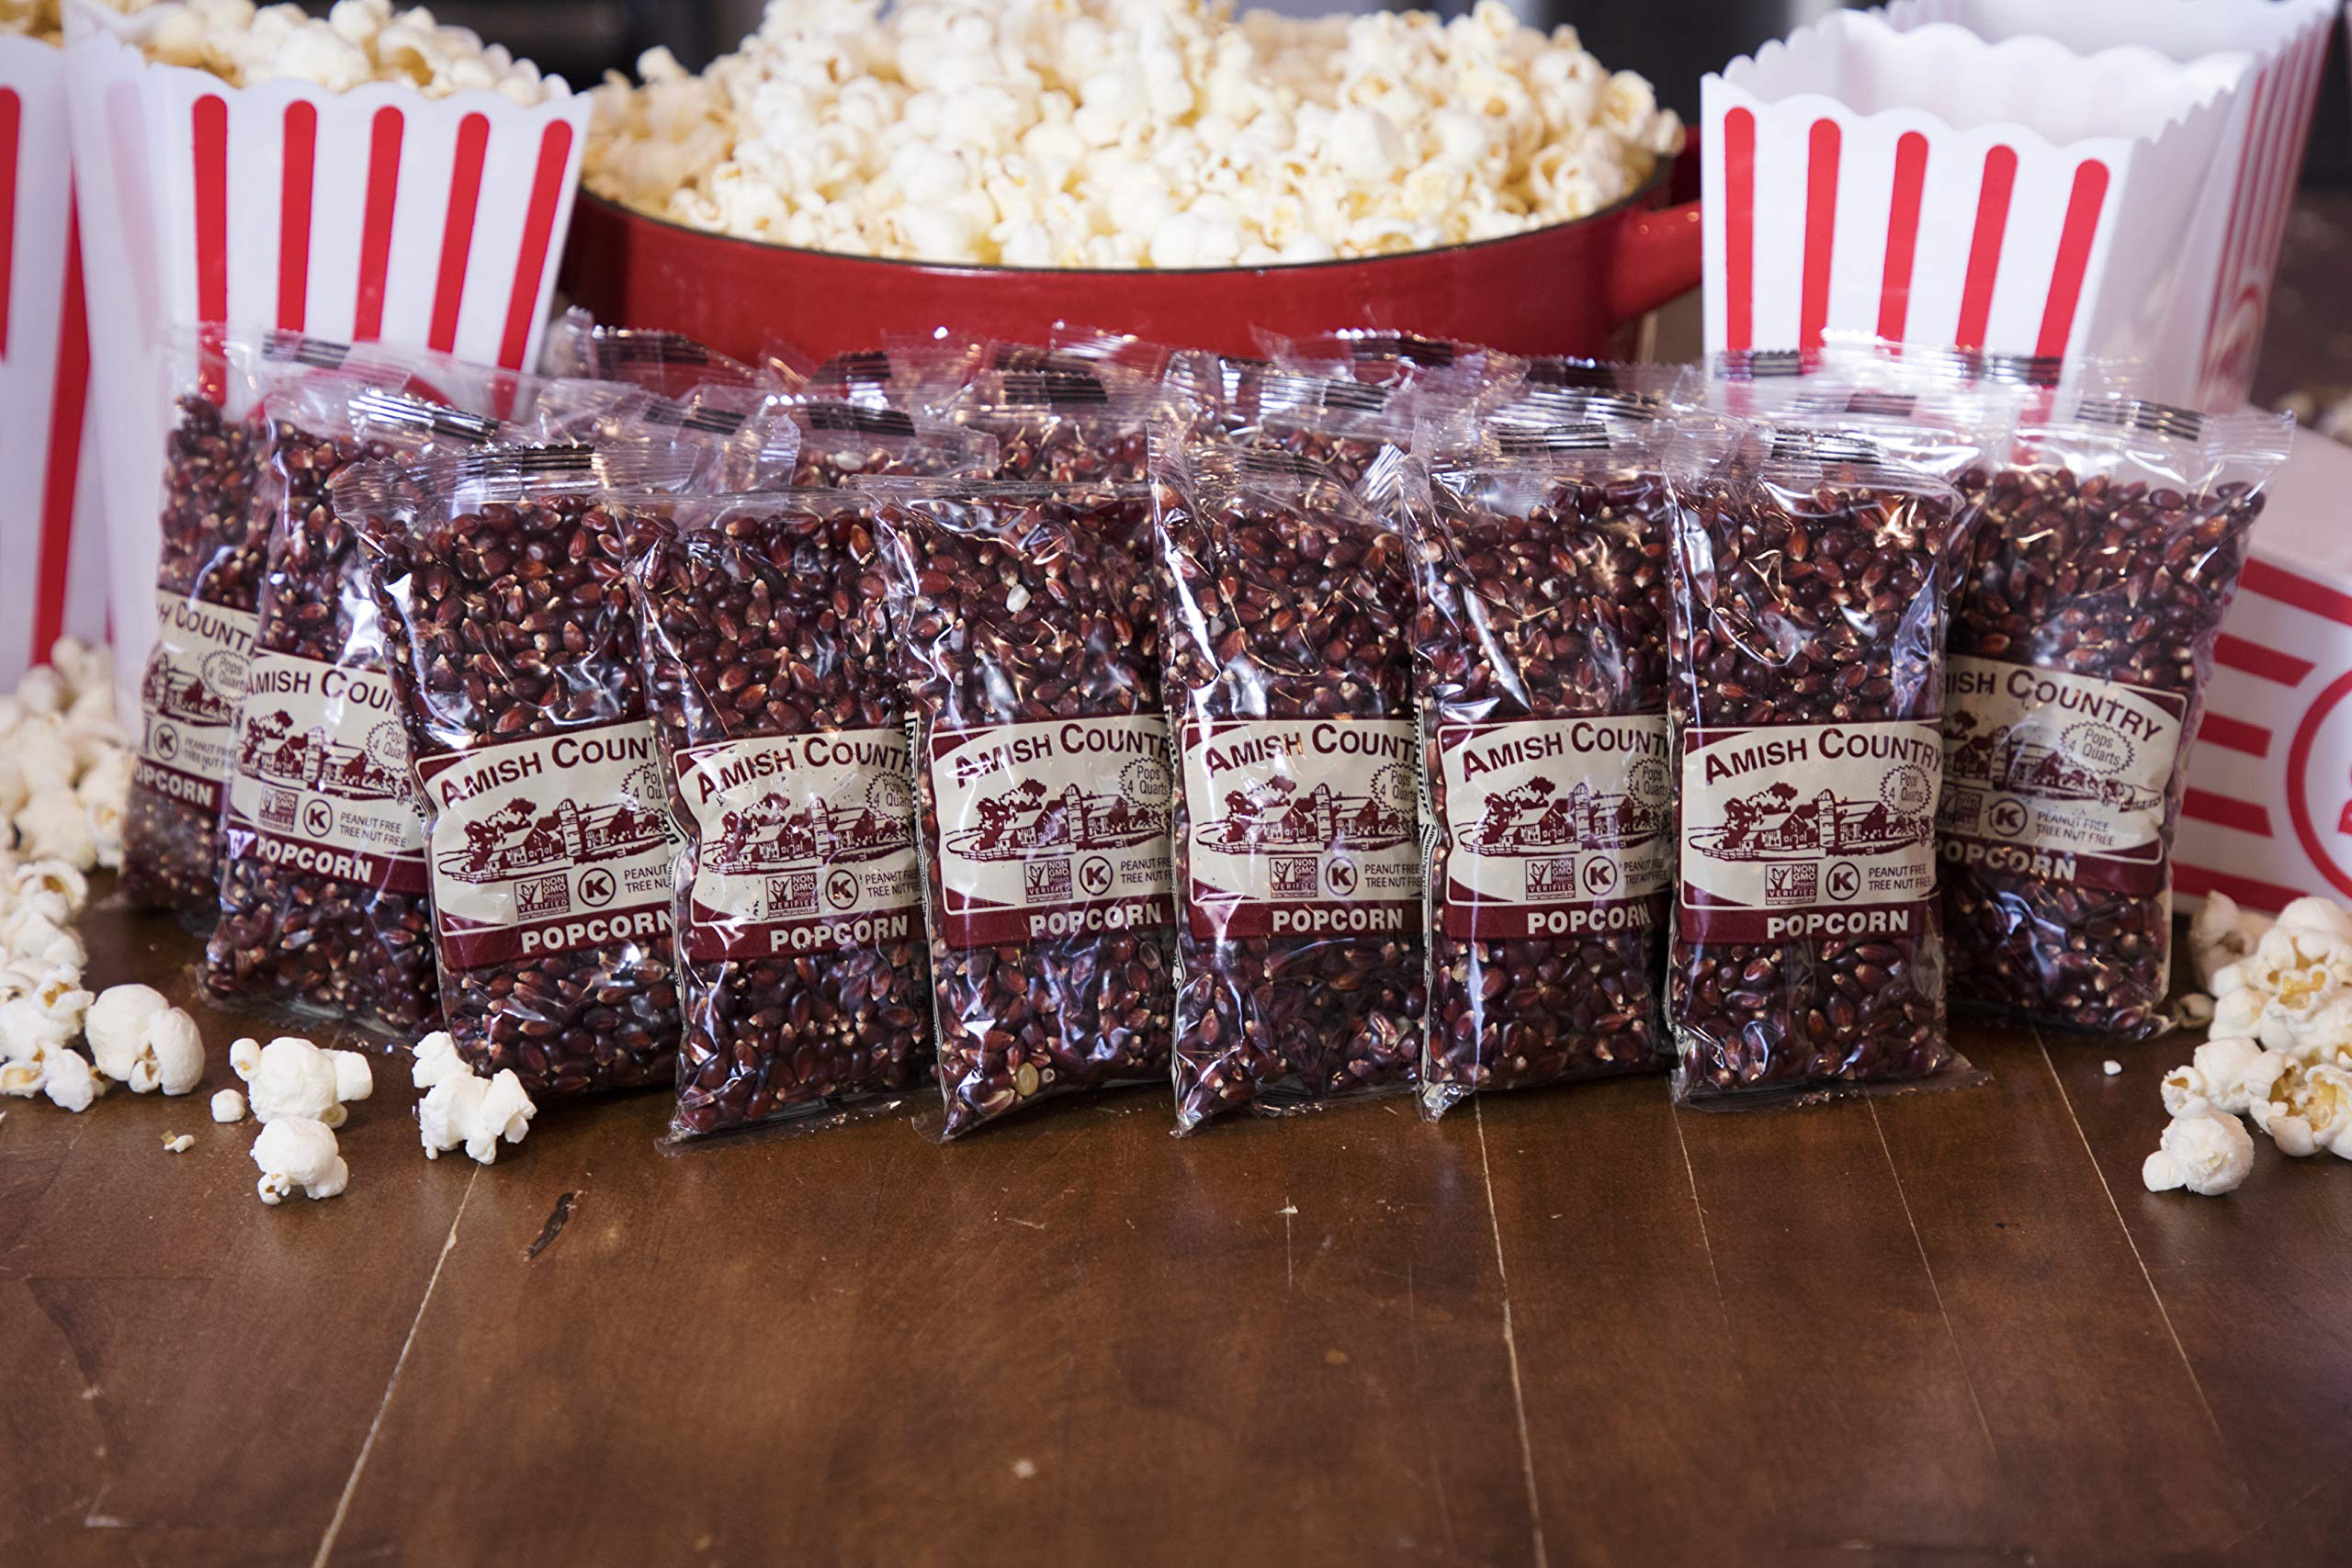 Amish Country Popcorn - Red Popcorn (4 Ounce - 24 Pack) - Old Fashioned, Non GMO, and Gluten Free - with Recipe Guide by Amish Country Popcorn (Image #3)